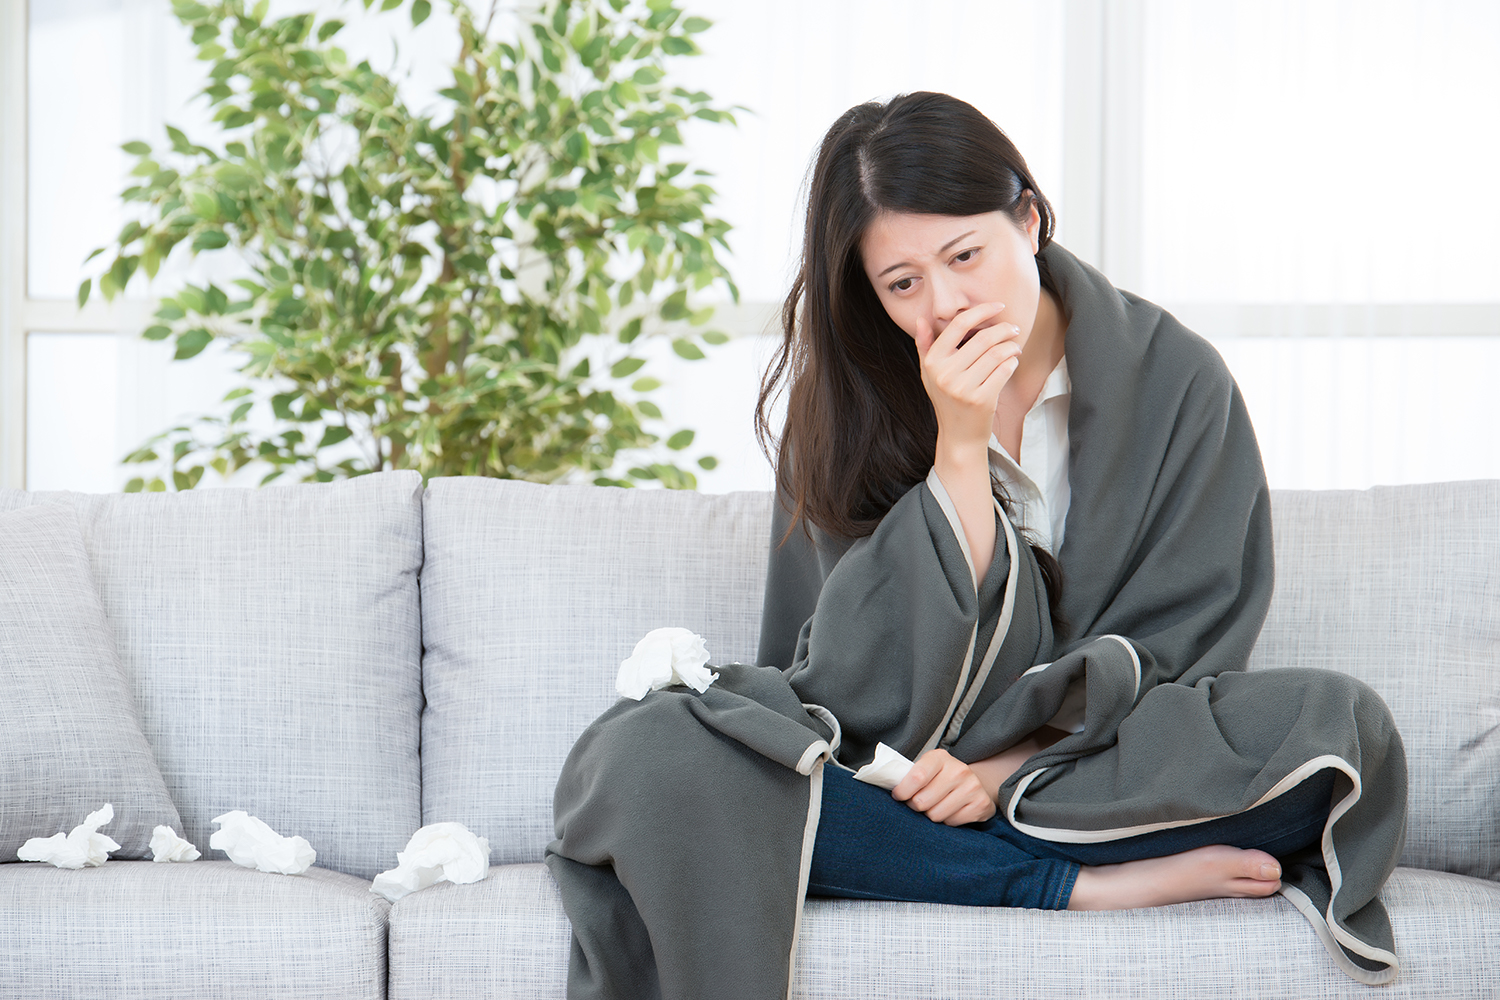 A woman on the couch with a blanket and a pile of tissues